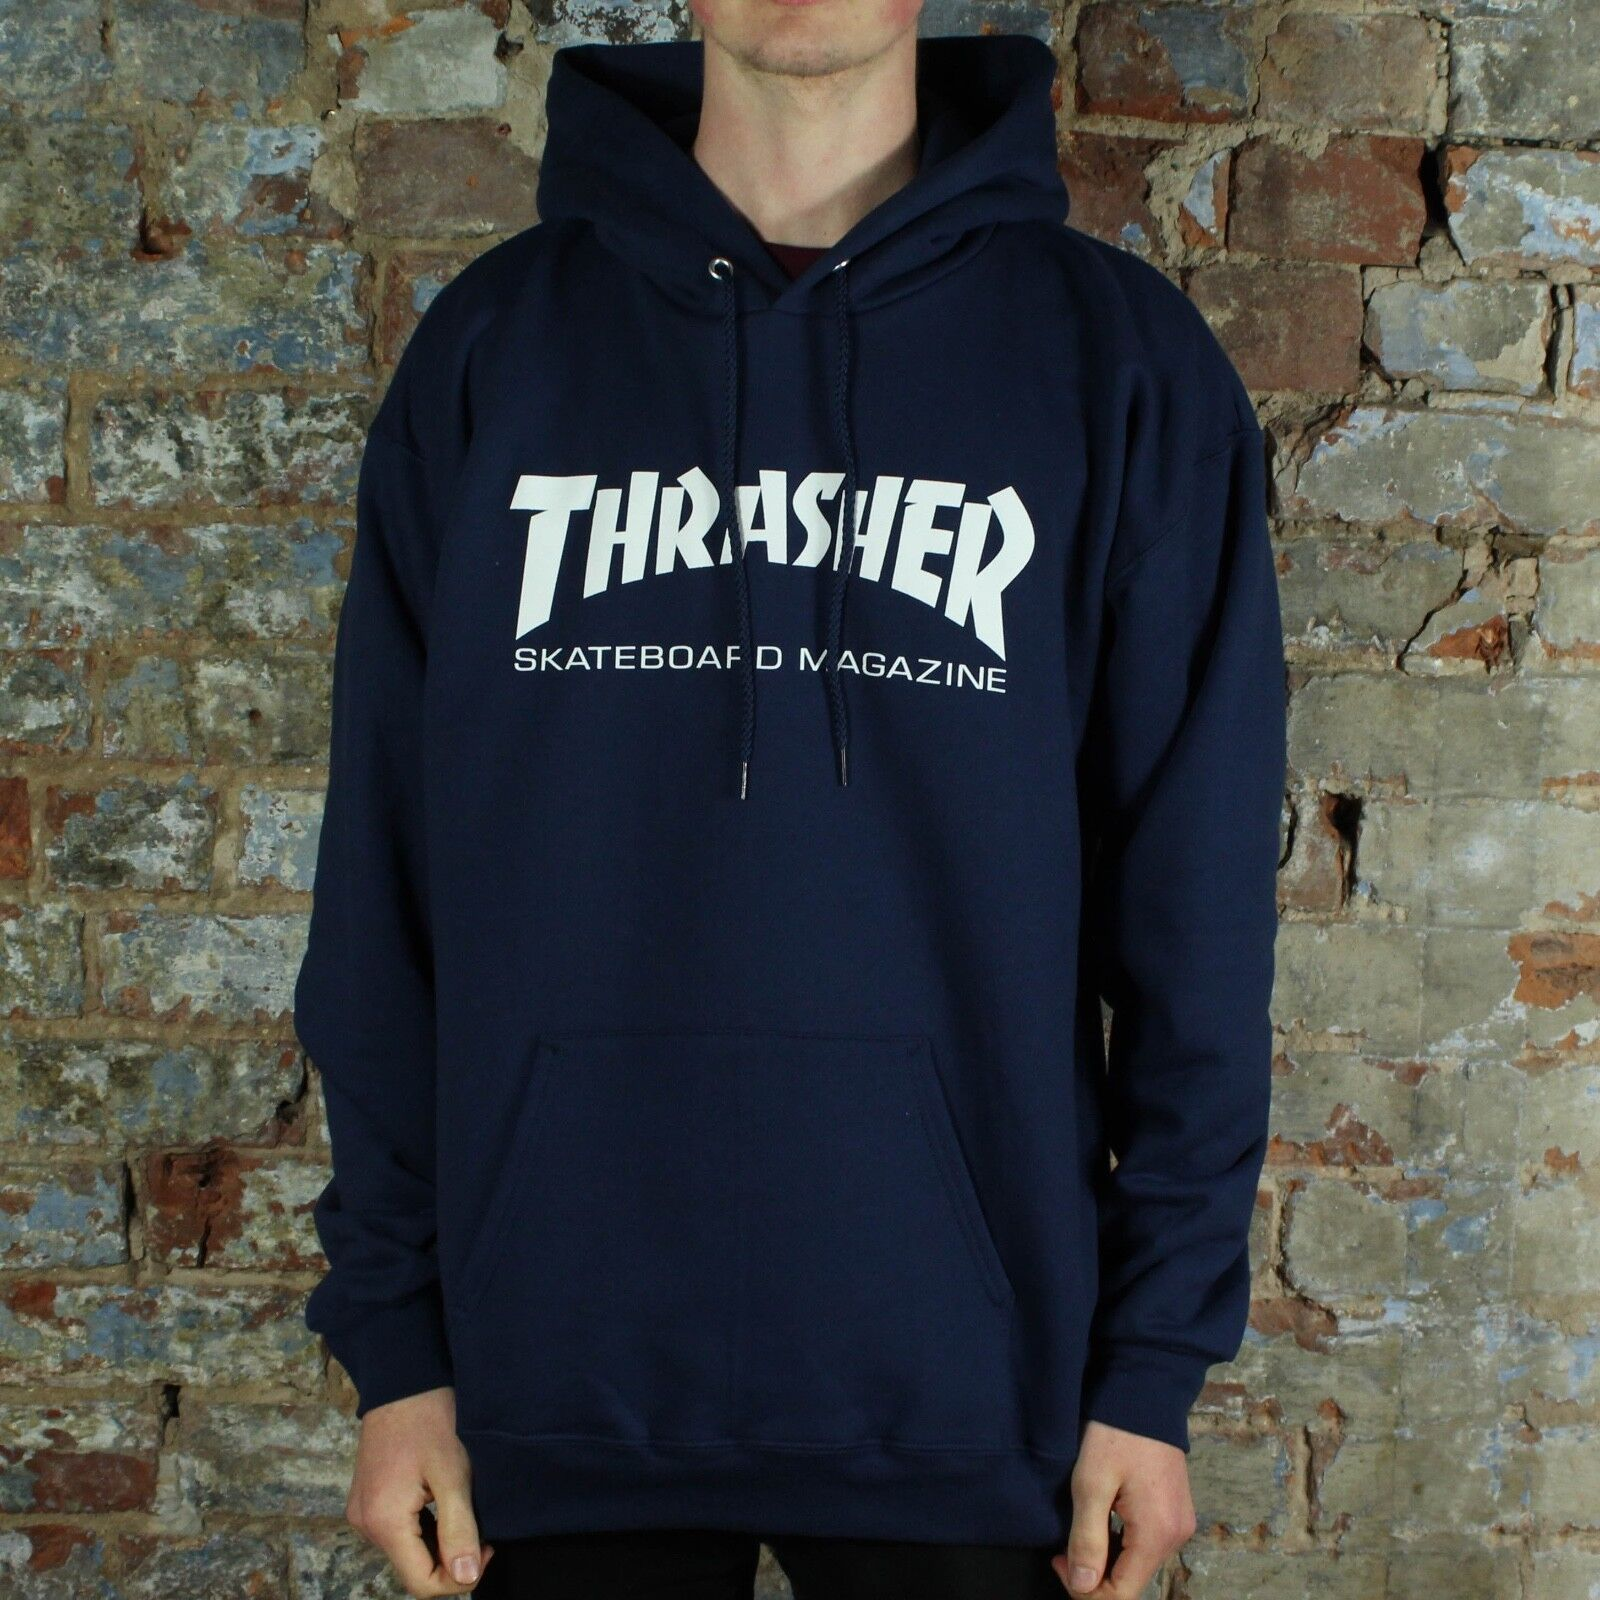 c7fe2f328820 Details about Thrasher Stock Skate Mag Logo Pullover Hooded Sweatshirt –  Navy in size S